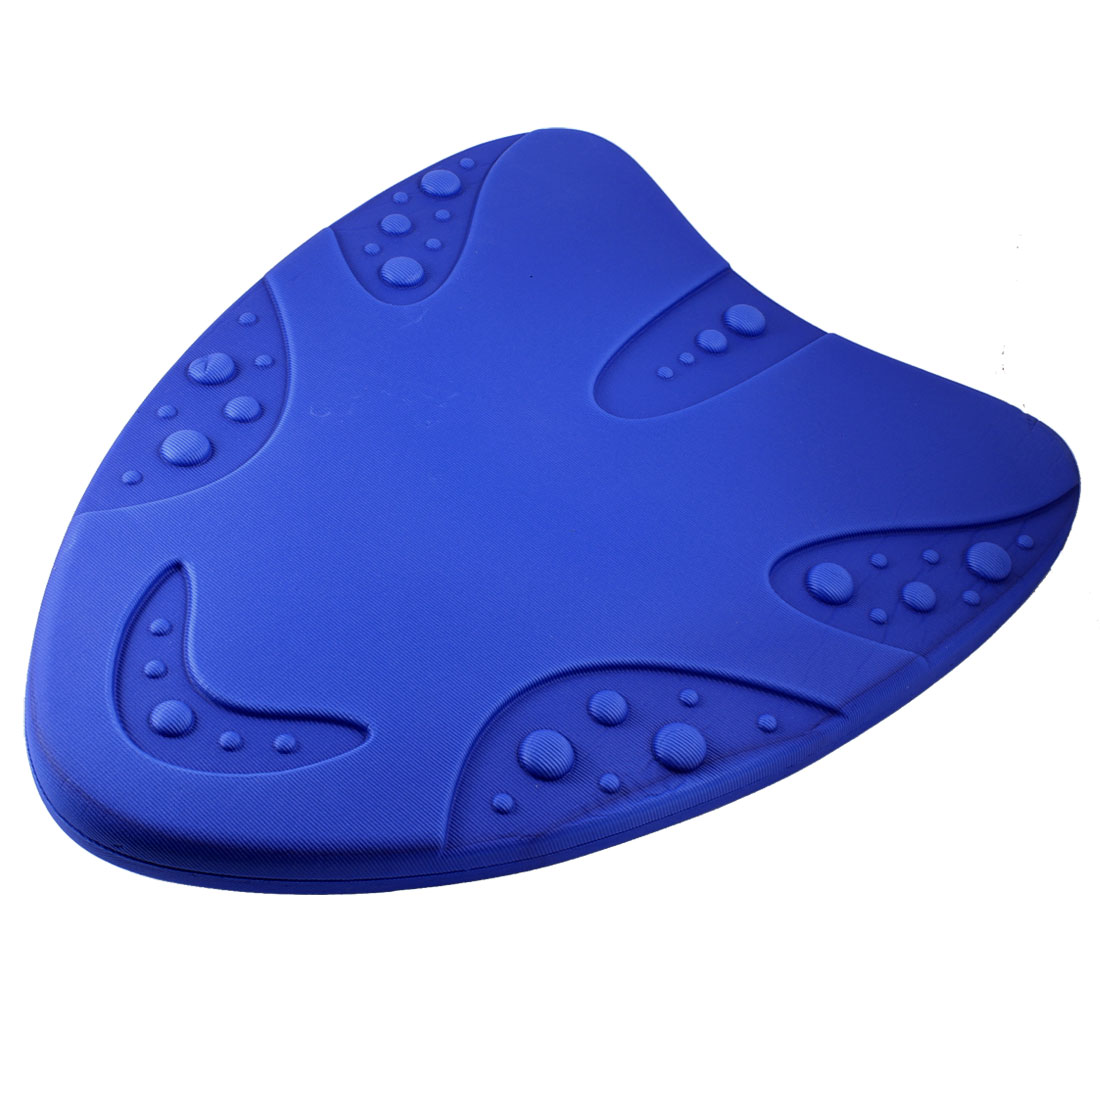 Blue Swimming Pool Fish Head Model Floating Kick Board for Children